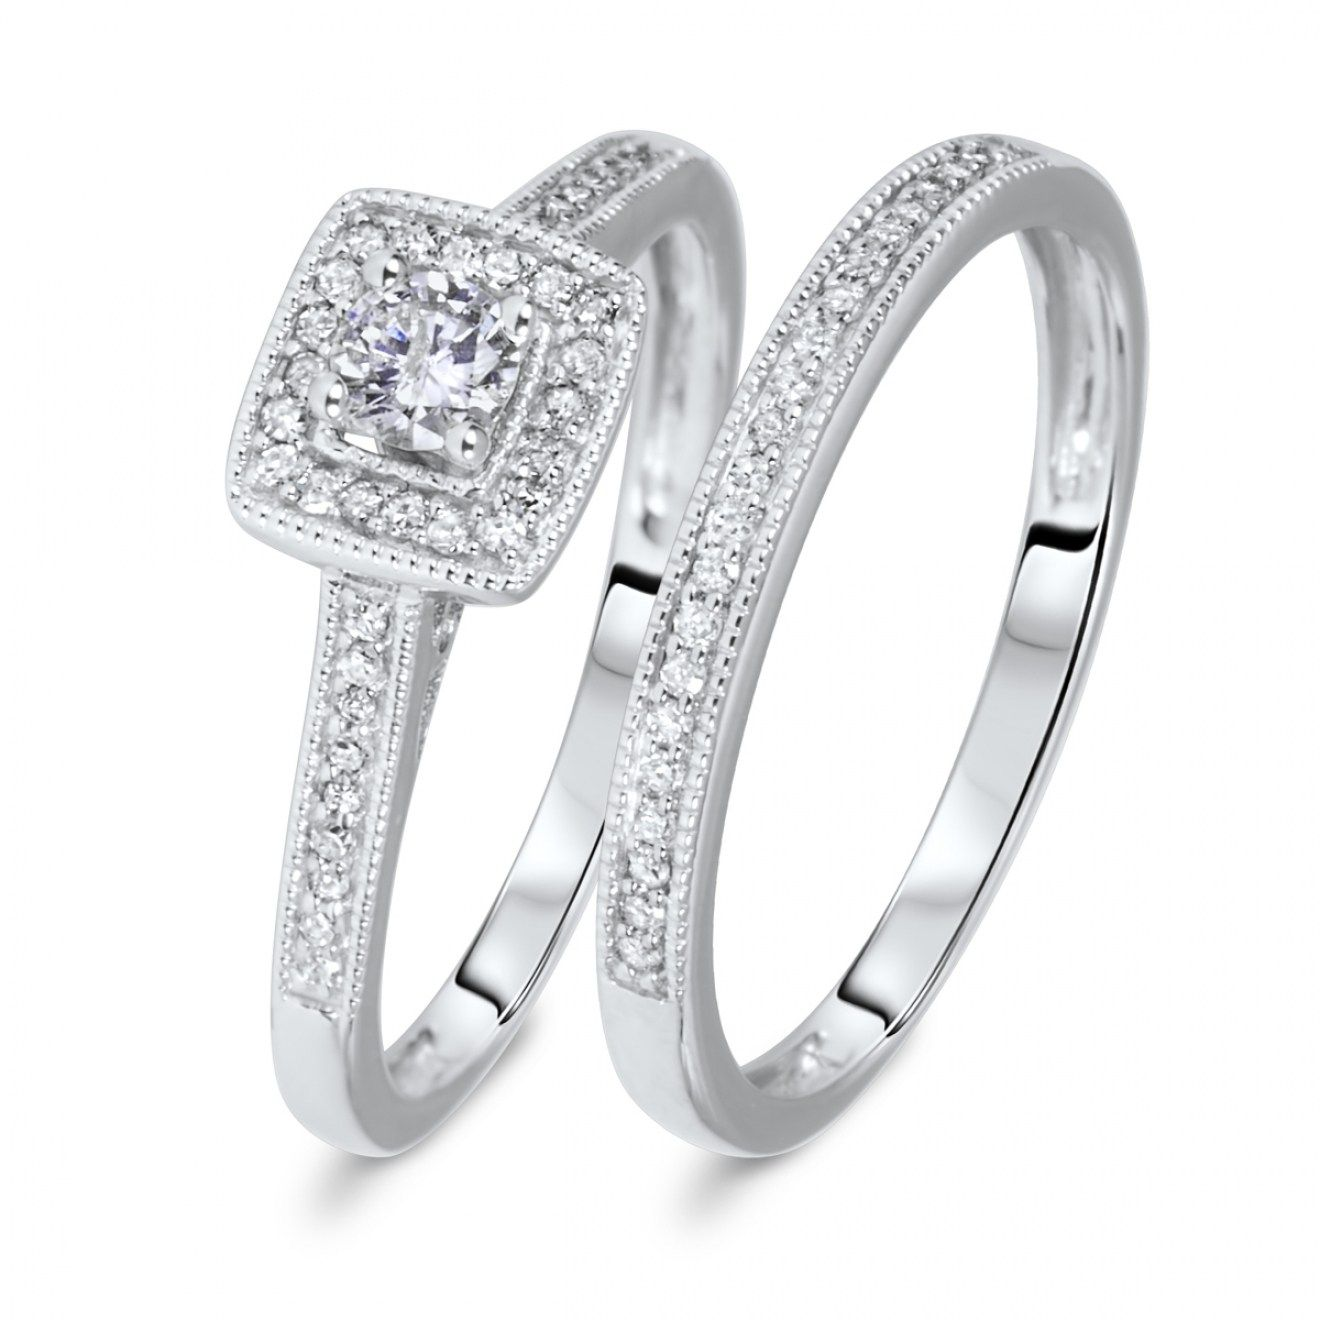 30 Best Wedding Ring Sets White Gold Inspiration